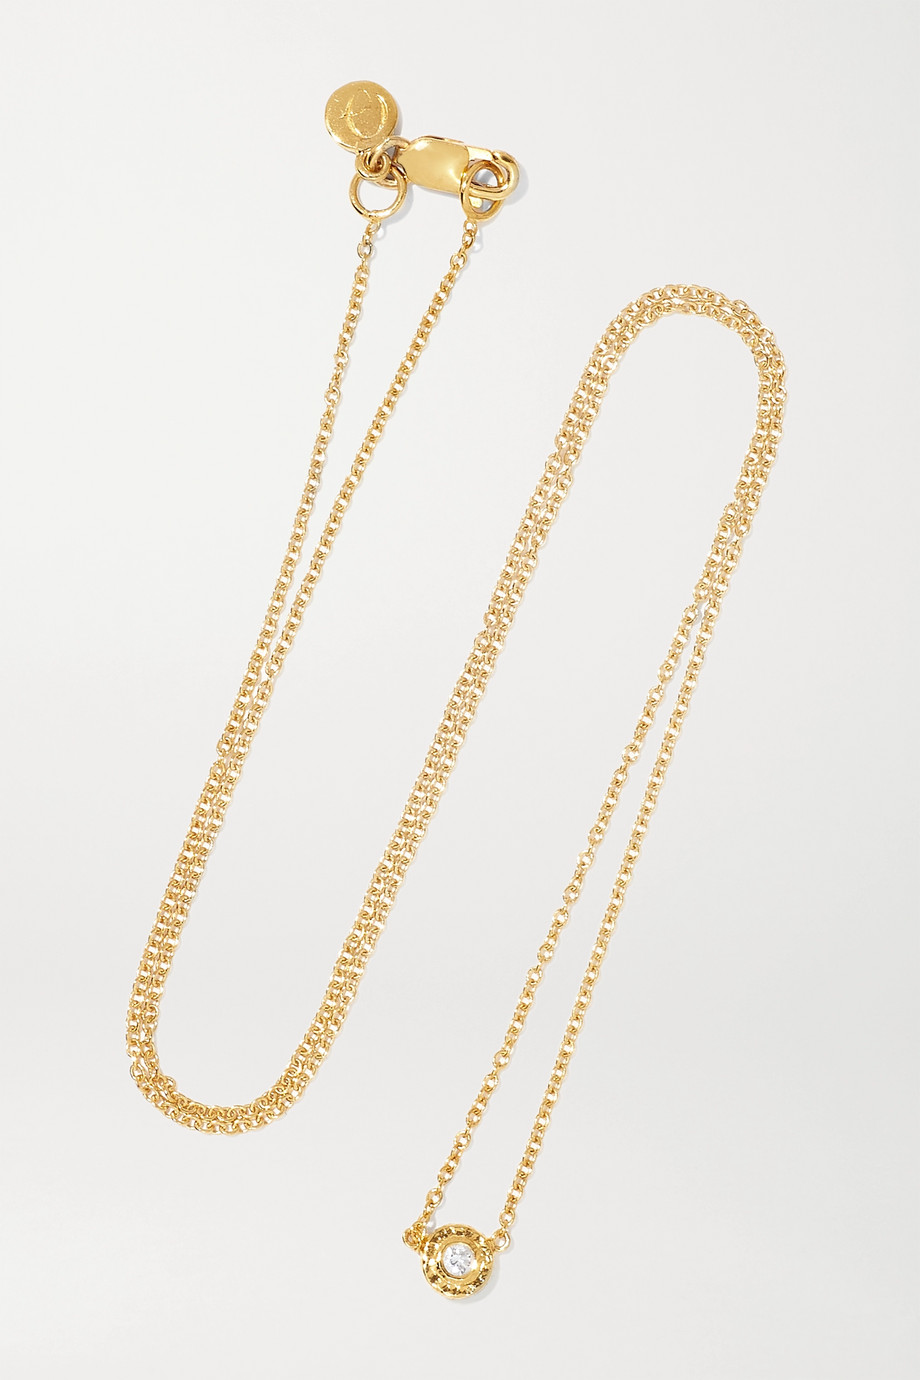 Octavia Elizabeth + NET SUSTAIN Nesting Gem 18-karat gold diamond necklace